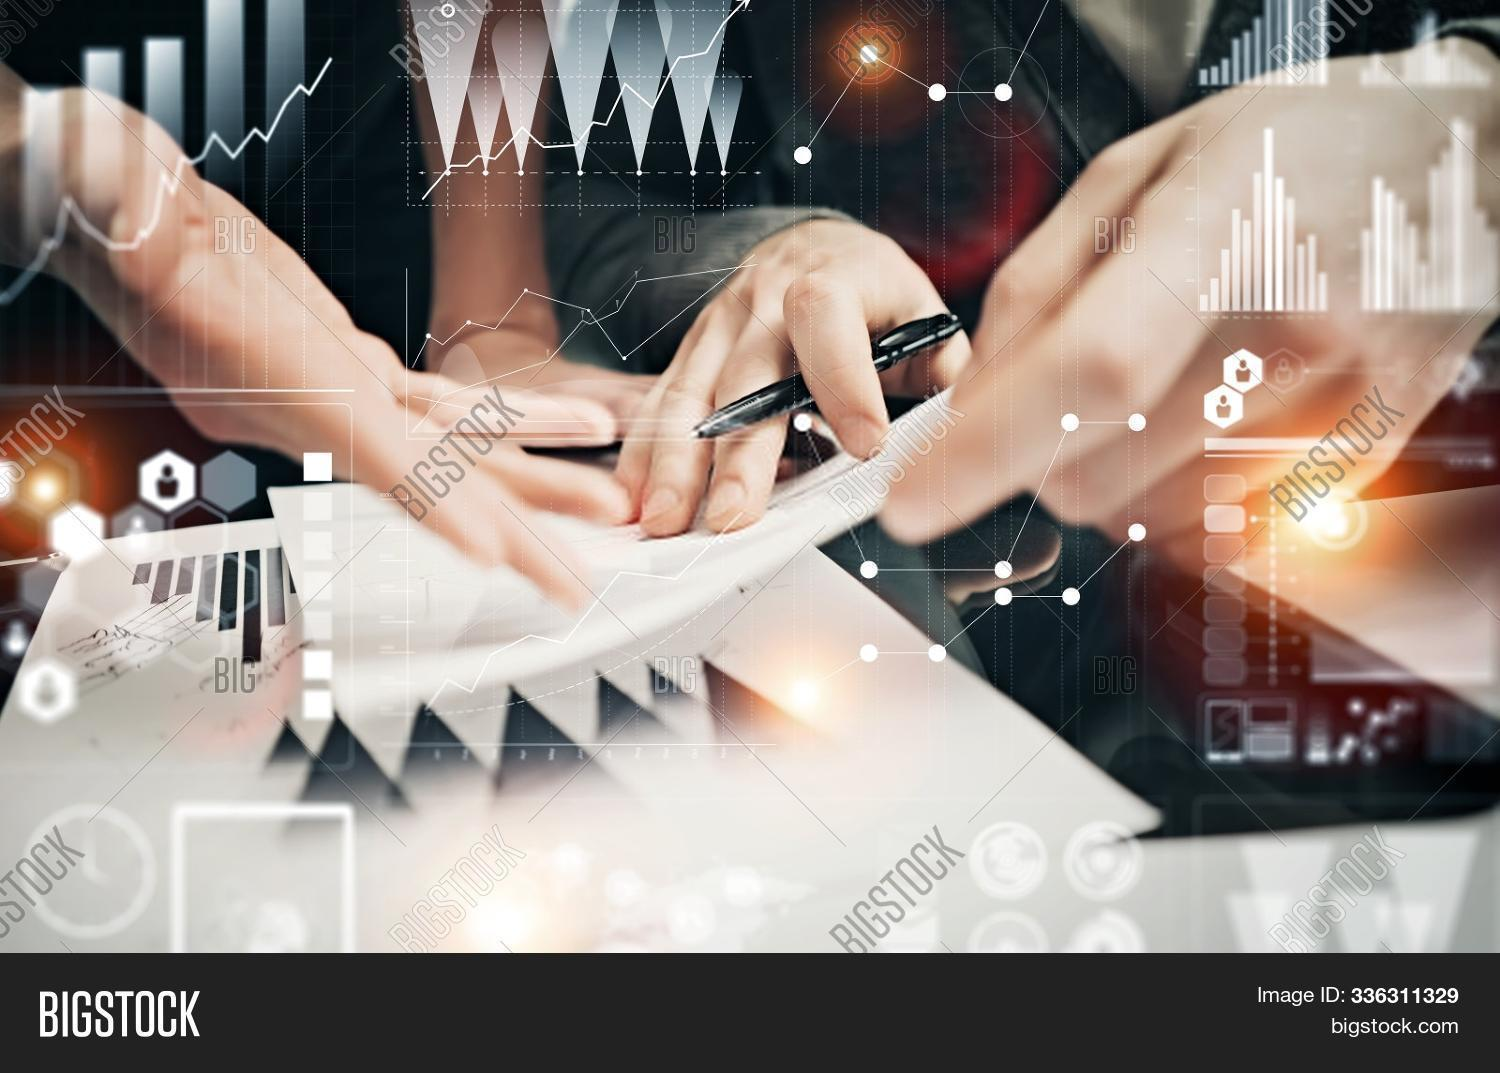 business,businessman,businesswoman,communication,computer,concept,connect,connection,cyber,data,digital,double,economy,exchange,exposure,filter,finance,fintech,global,globe,glowing,hand,handshake,hologram,information,interface,international,internet,invest,link,man,map,net,network,office,partnership,people,planet,science,strategy,team,tech,technology,toning,transfer,using,virtual,woman,world,worldwide